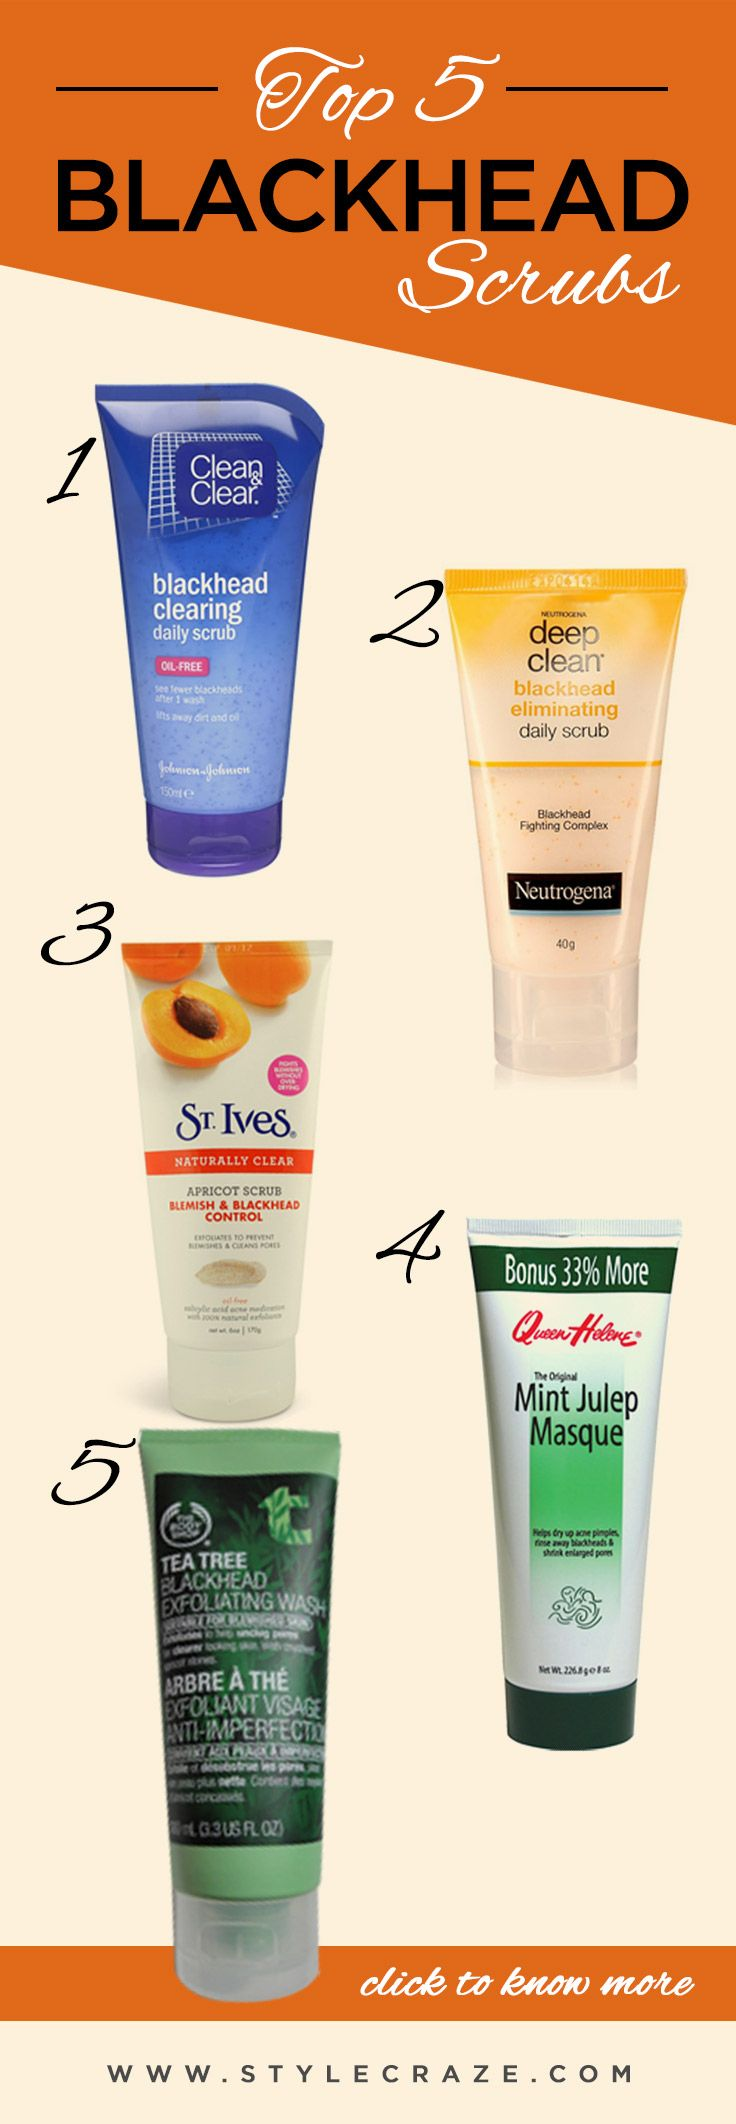 Blackhead removal creams and scrubs pics